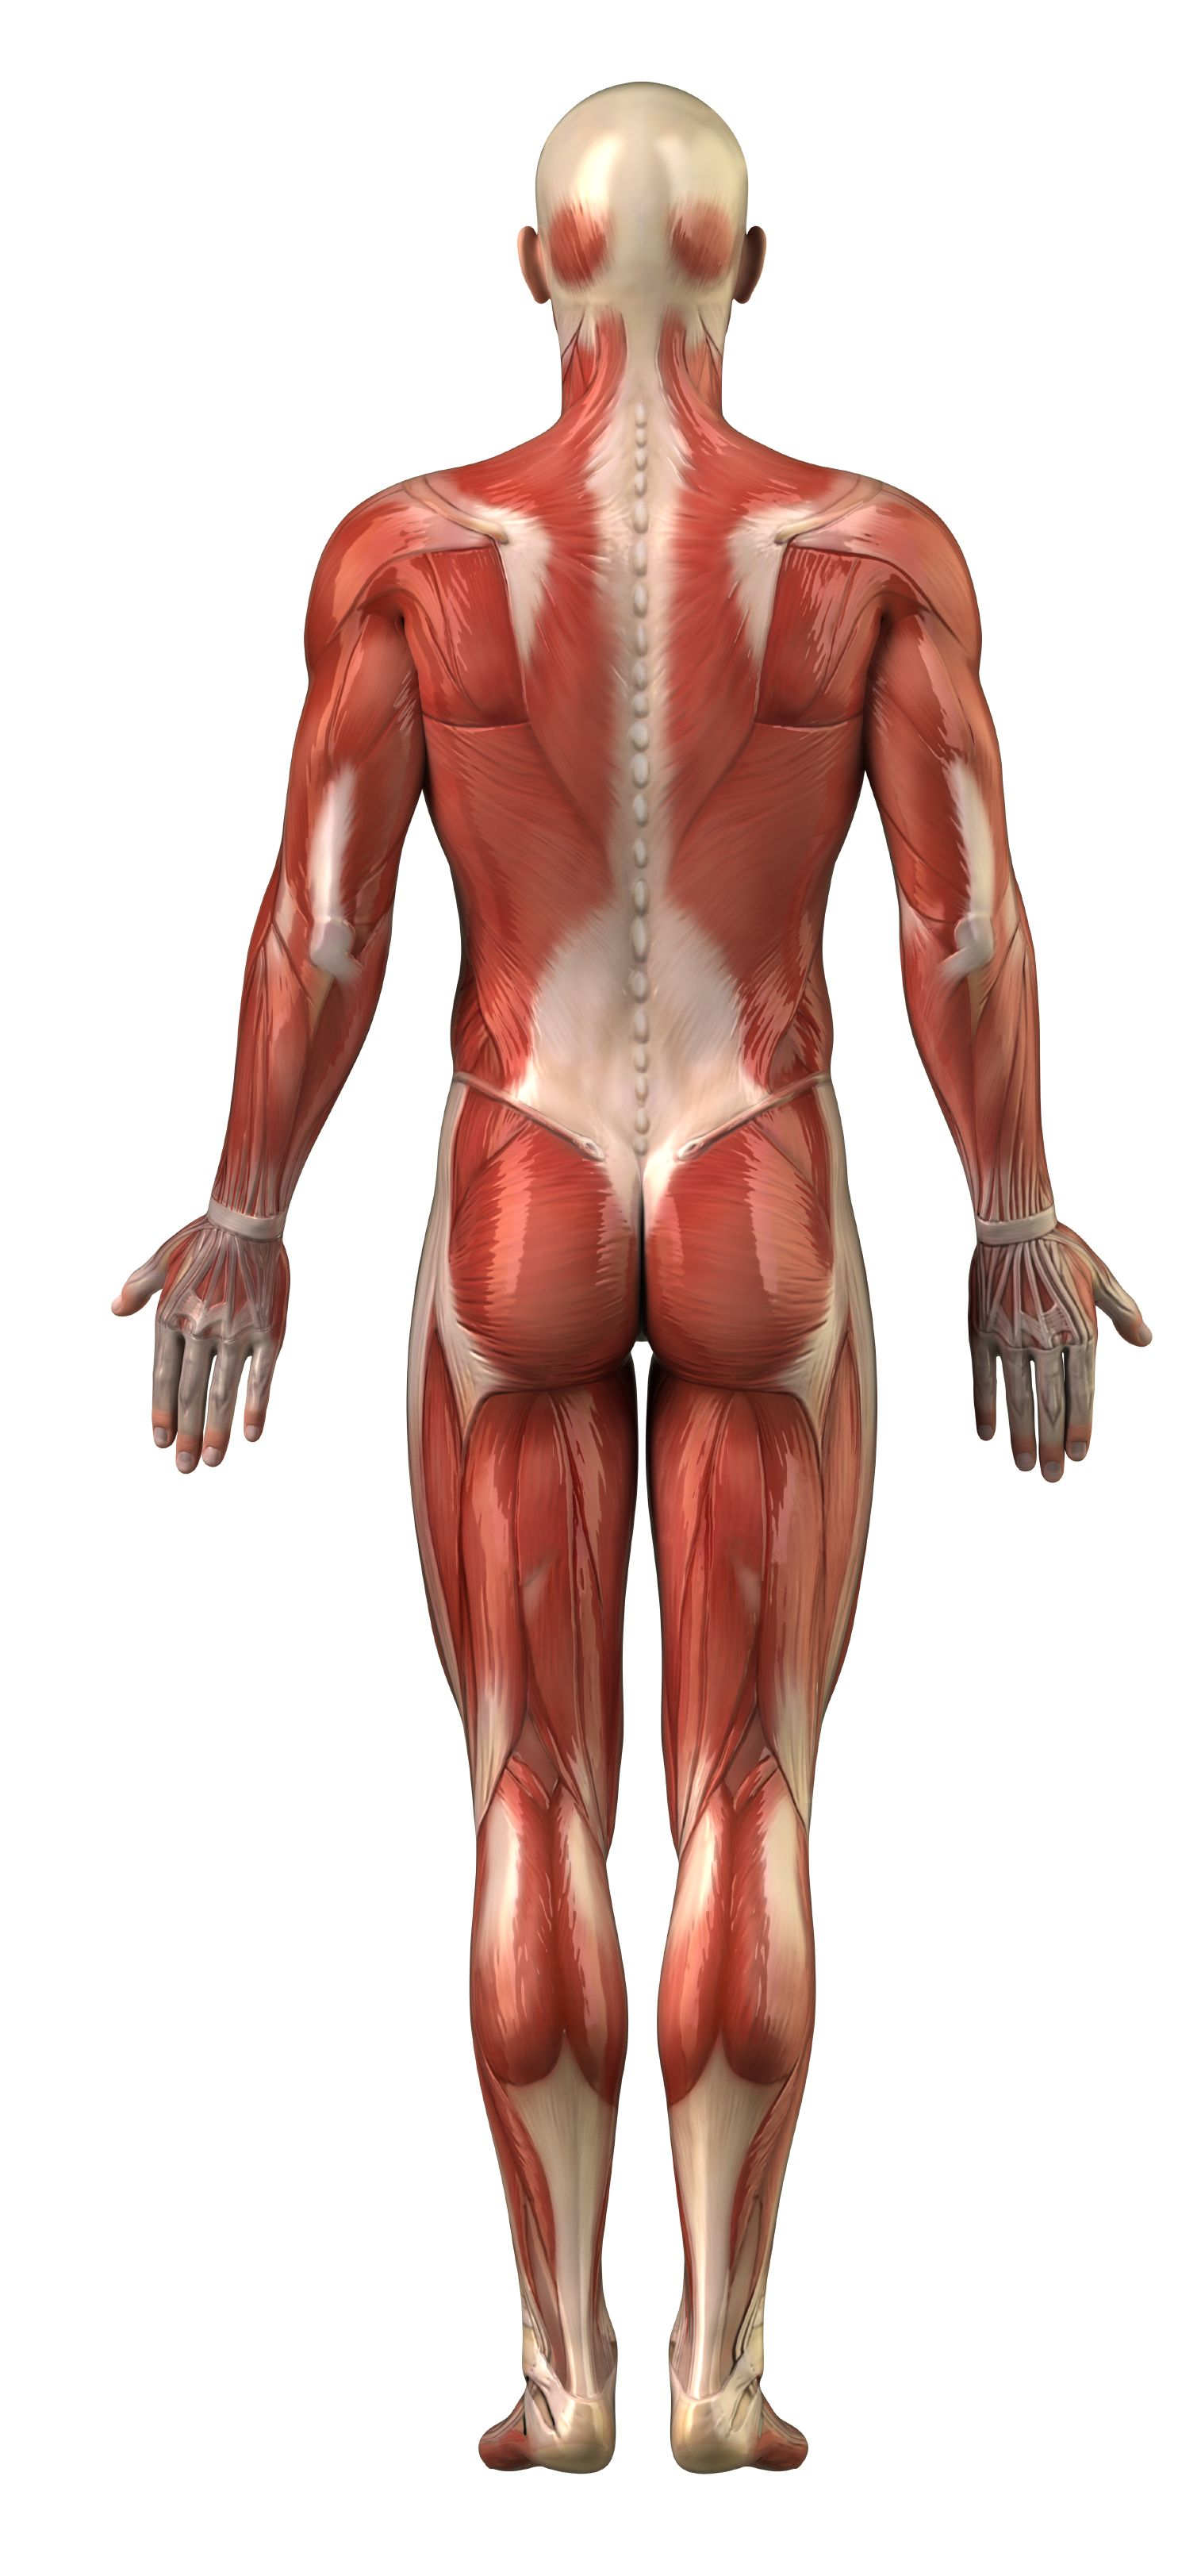 body muscles back view - want an all natural body builder to show, Muscles